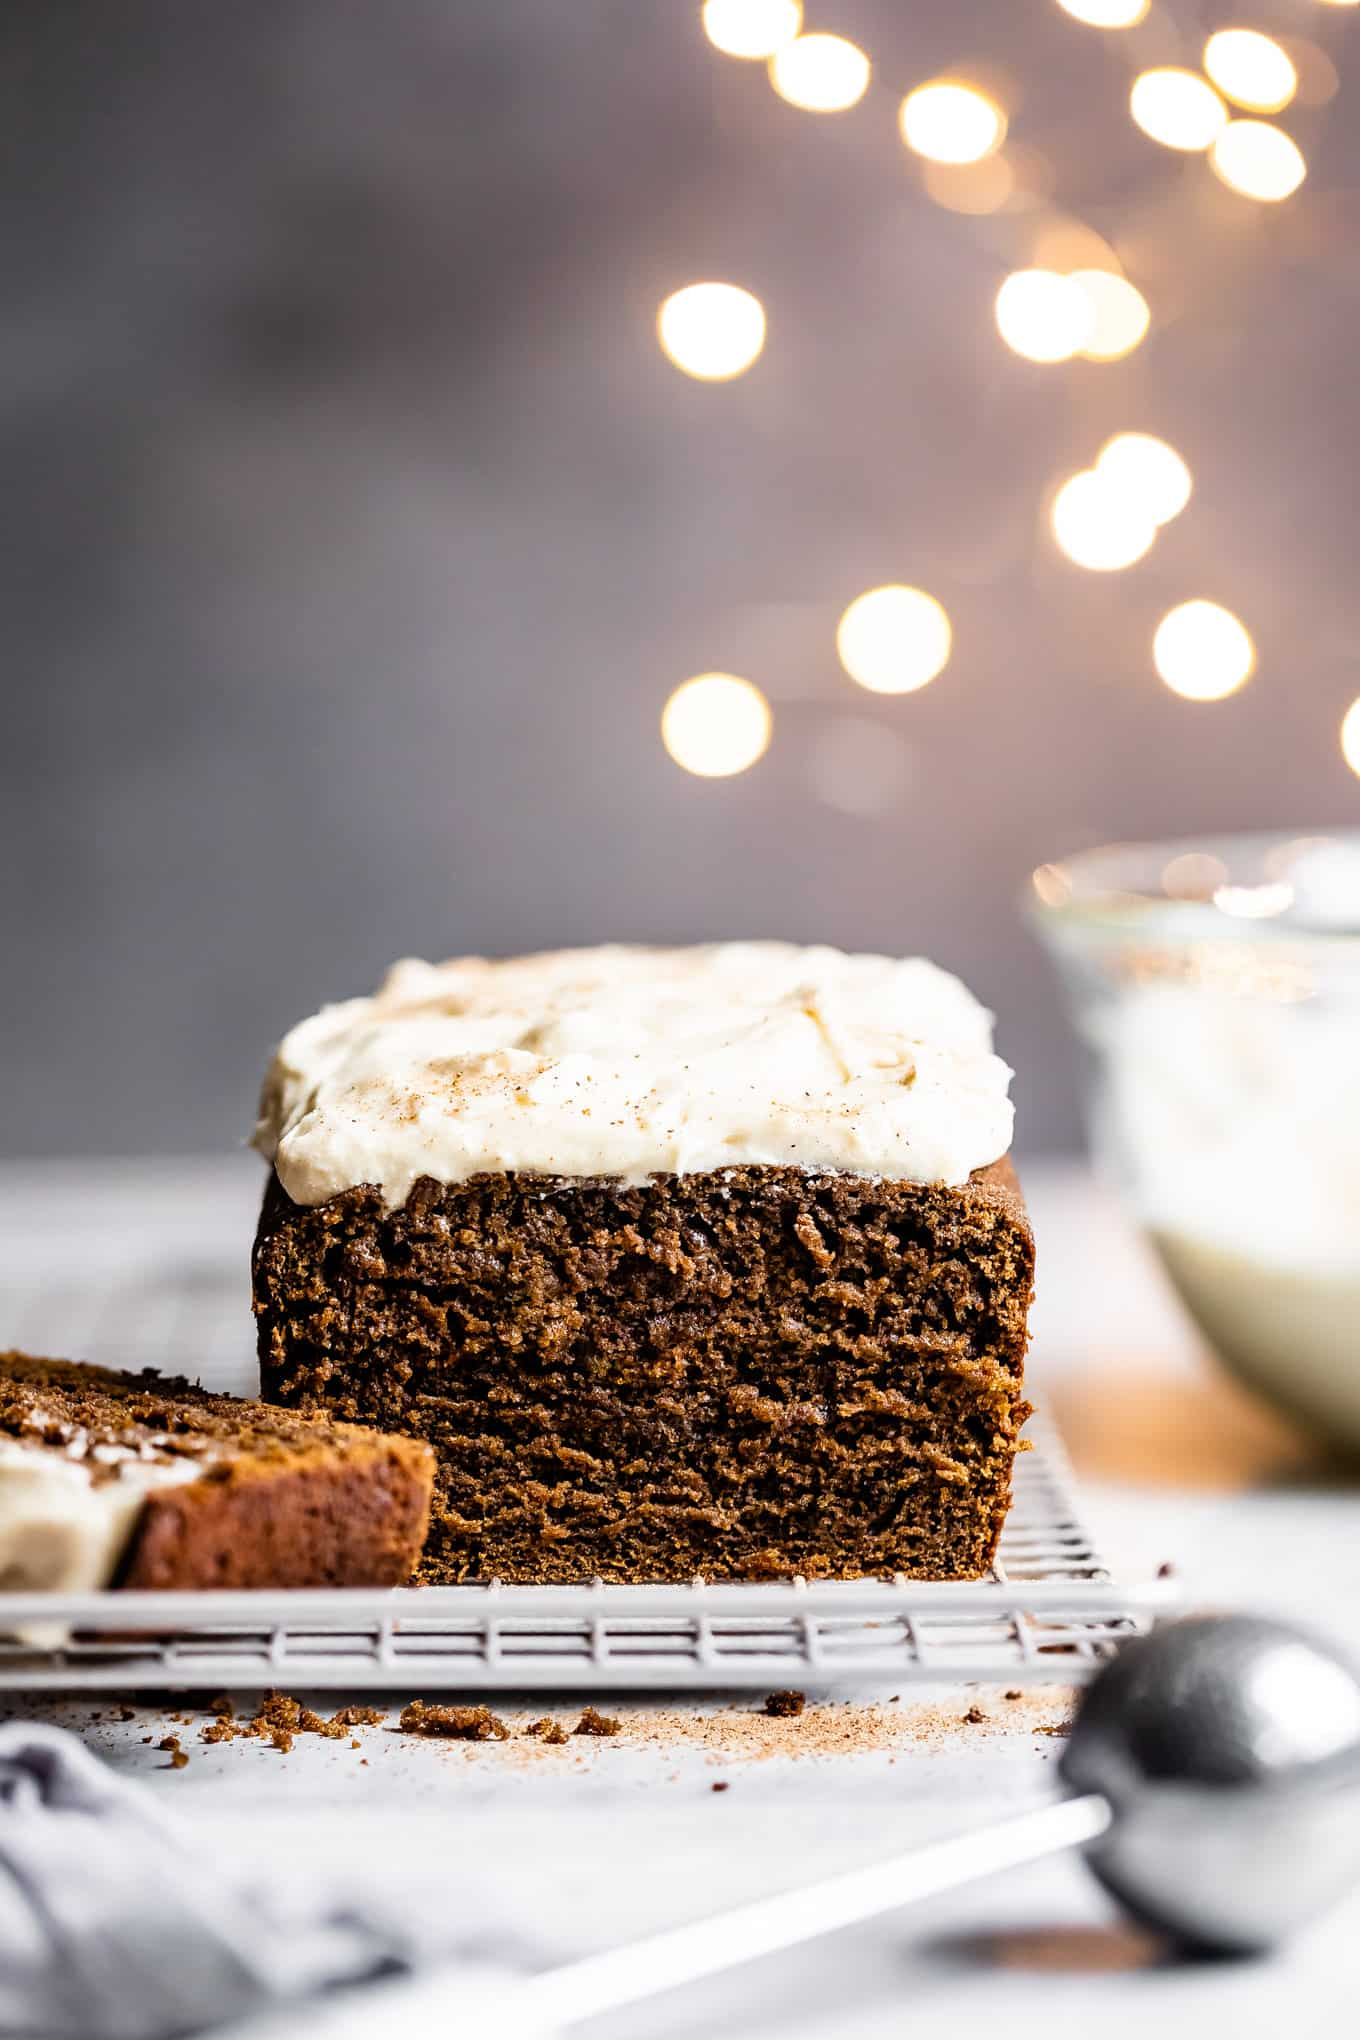 Gluten-Free Gingerbread with Eggnog Frosting